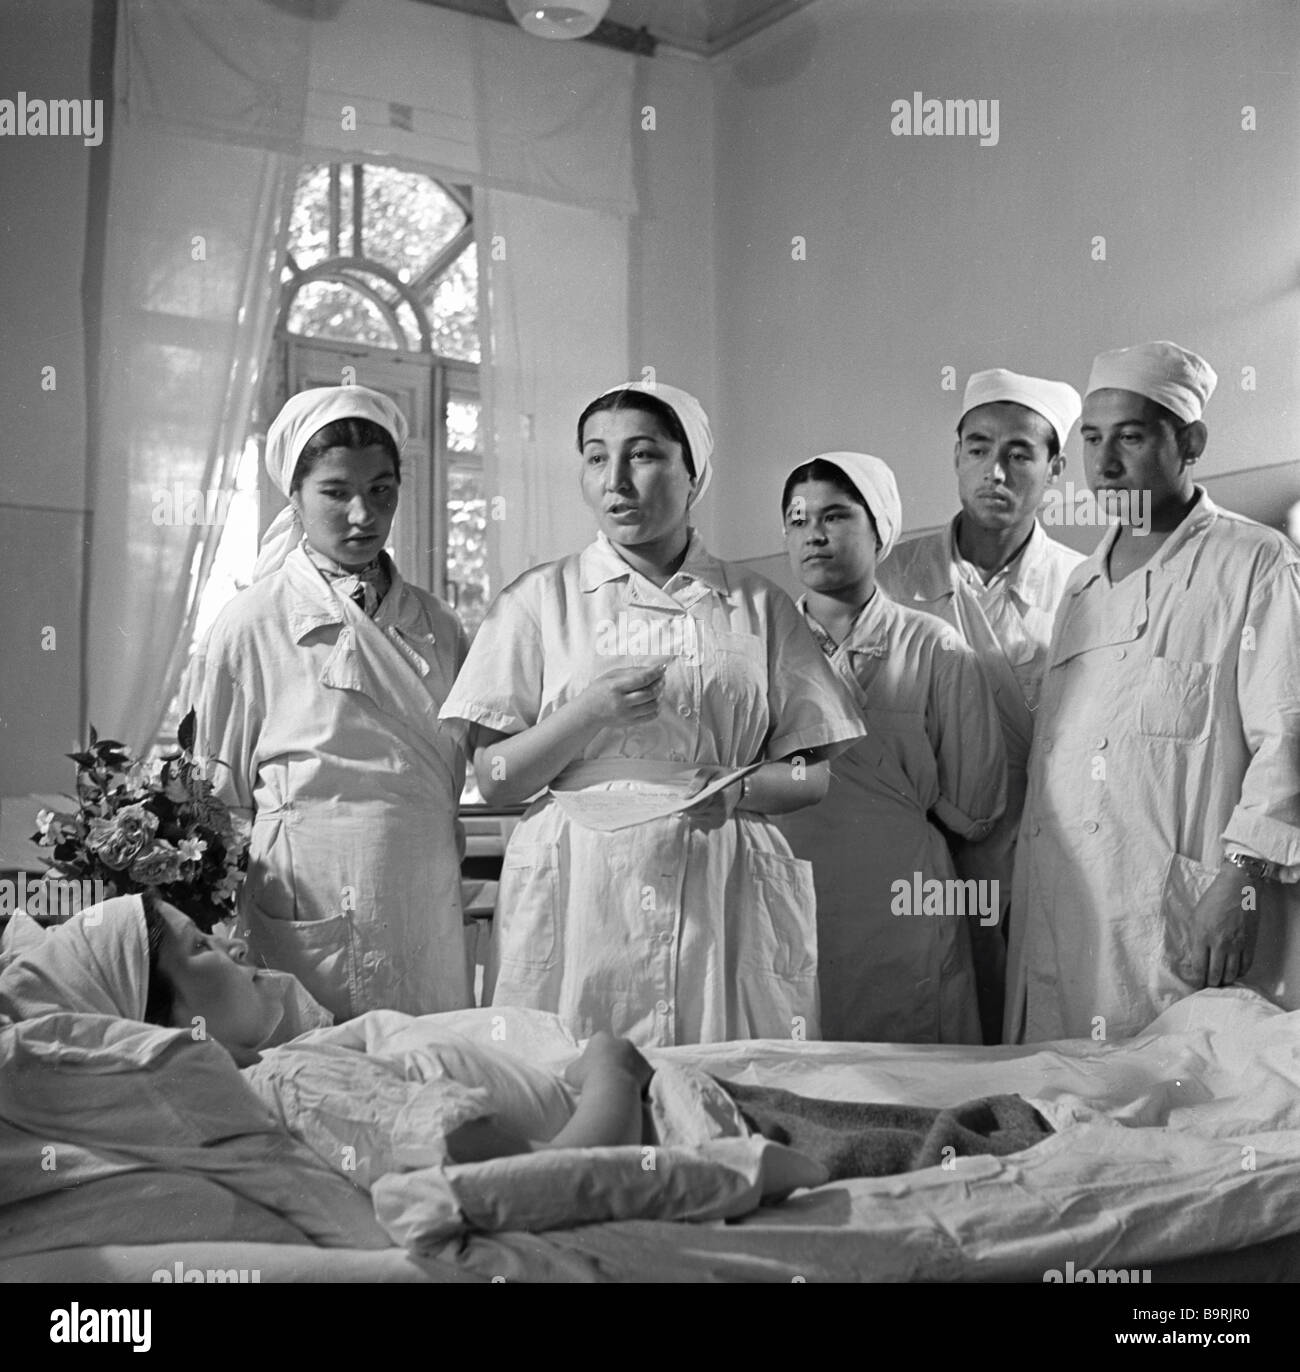 A doctor accompanied by a group of students making a hospital round - Stock Image